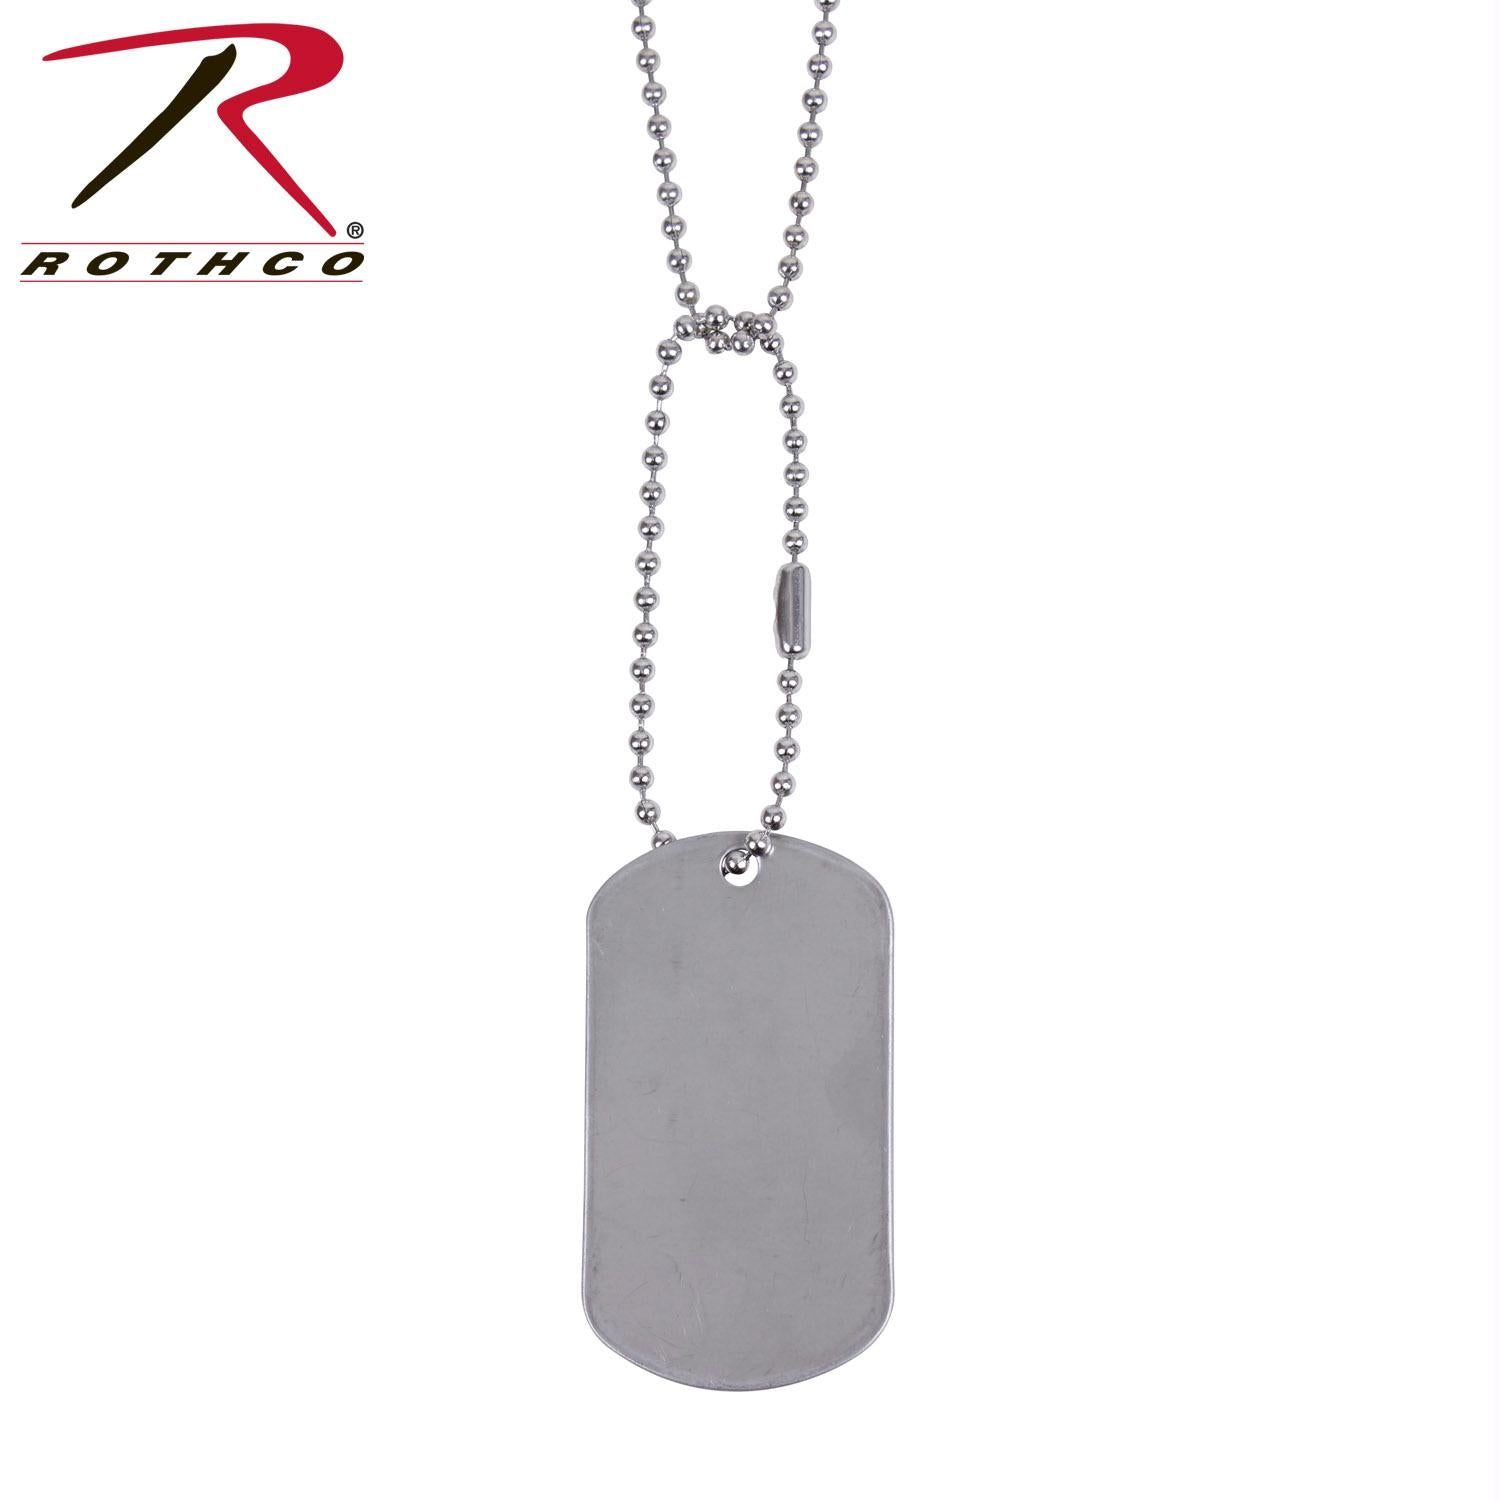 Rothco G.I. Type Dog Tag - Black